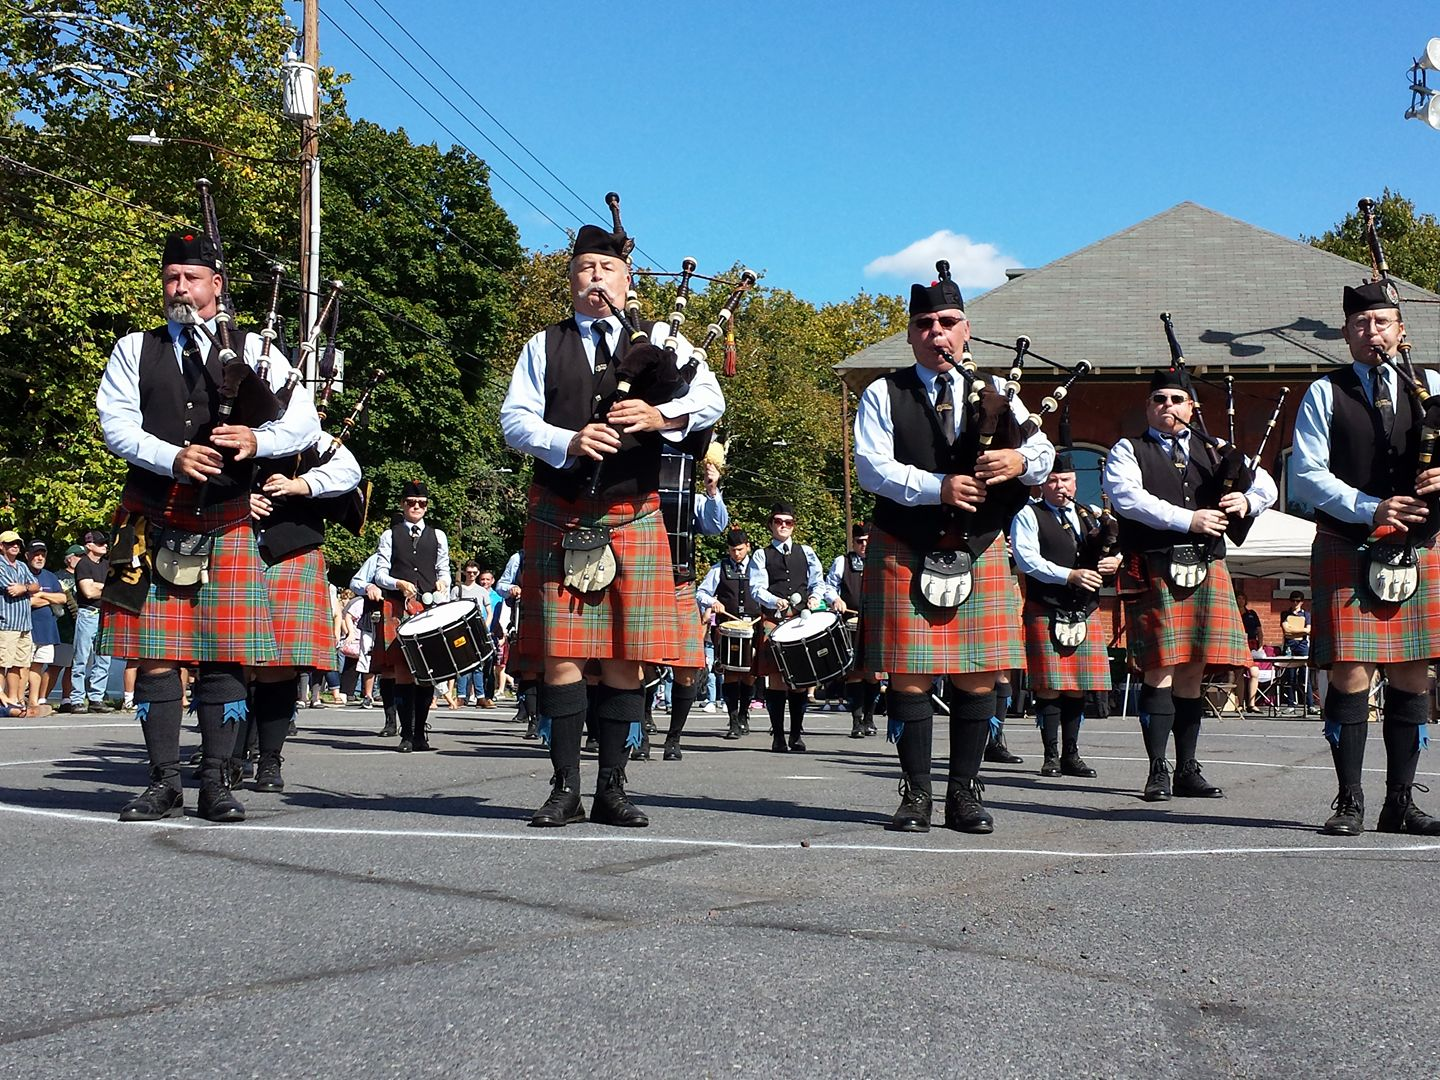 Hire the Band - St. Columcille provides a quality, crowd-stirring performance be it in parades, events, and stage performances. Click to learn more.